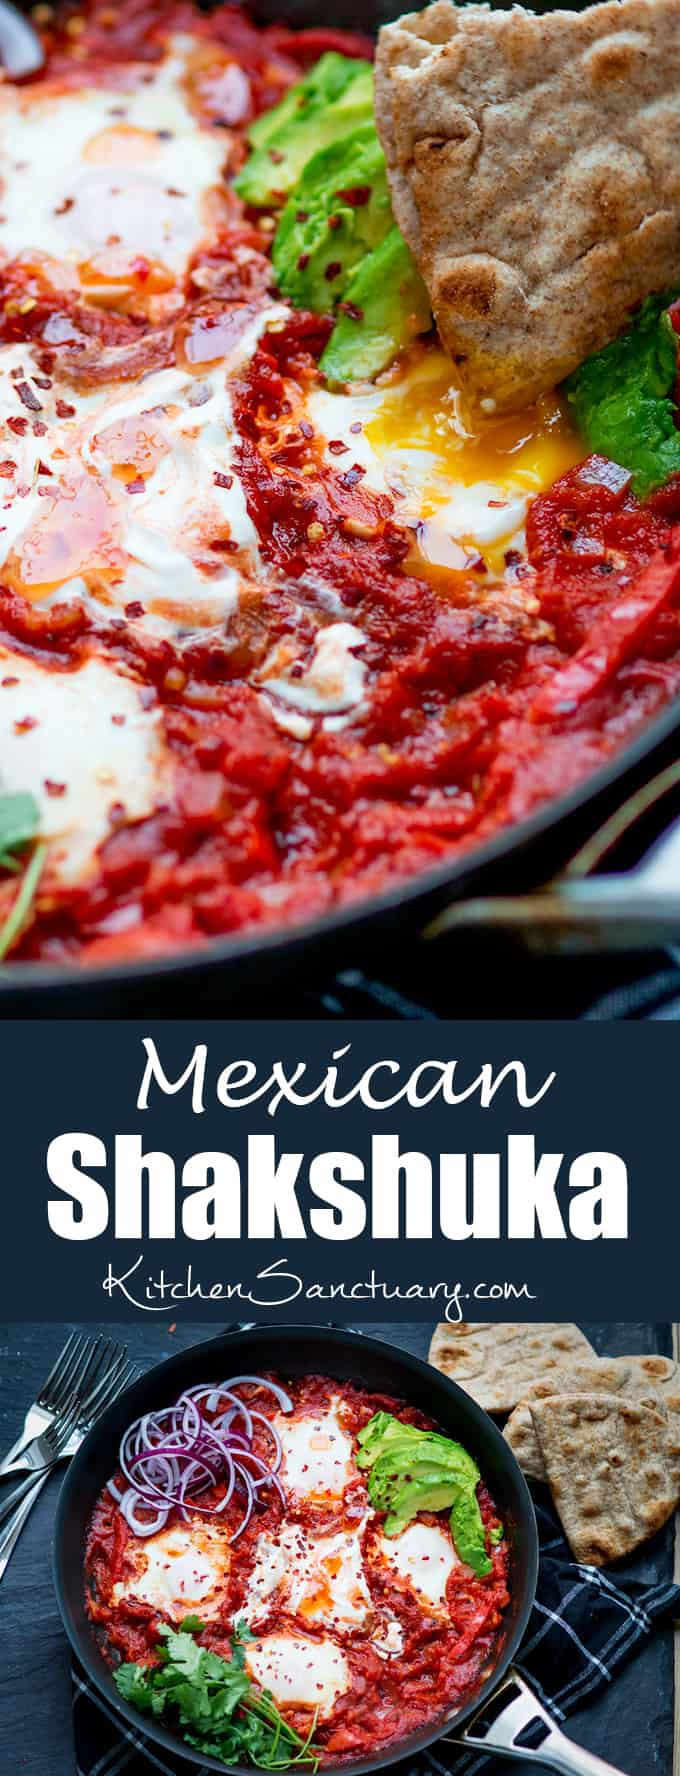 Mexican Shakshuka - dippy eggs poached in a rich Cajun tomato sauce.